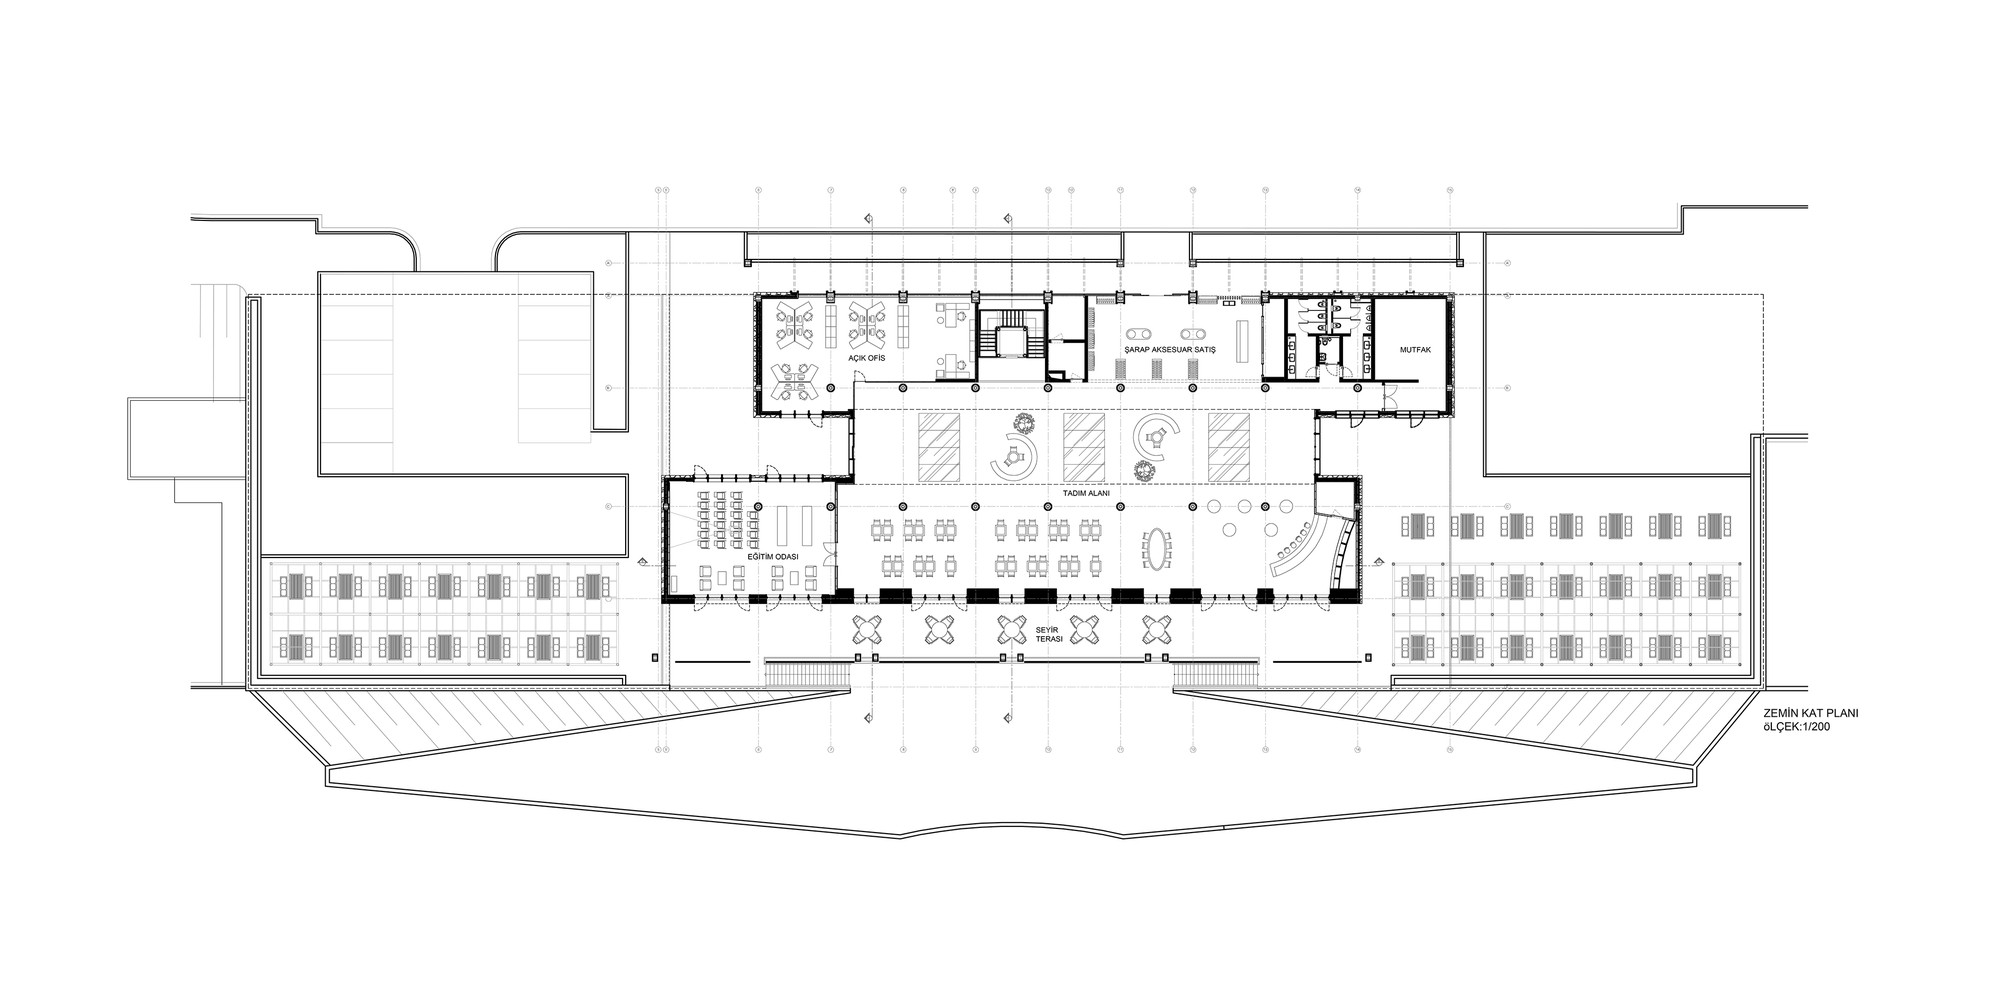 54bf2e46e58eceef700001fc Floor Plan on Factory Layout Design Floor Plan